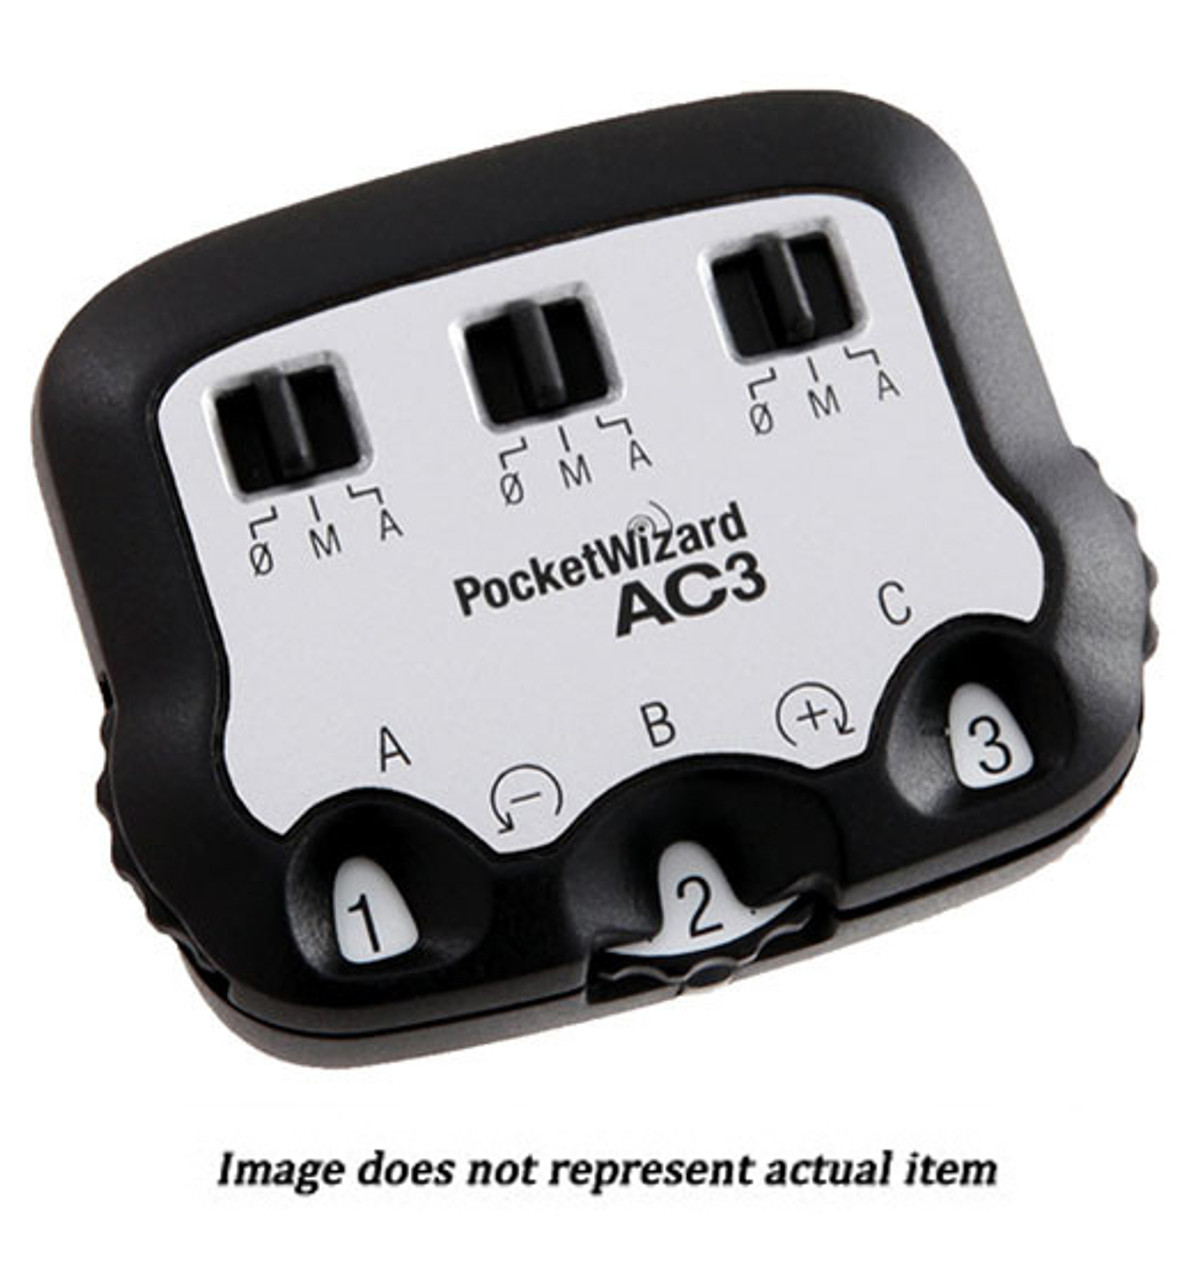 PocketWizard AC3 ZoneController for Canon (USED) - S/N A3C331094